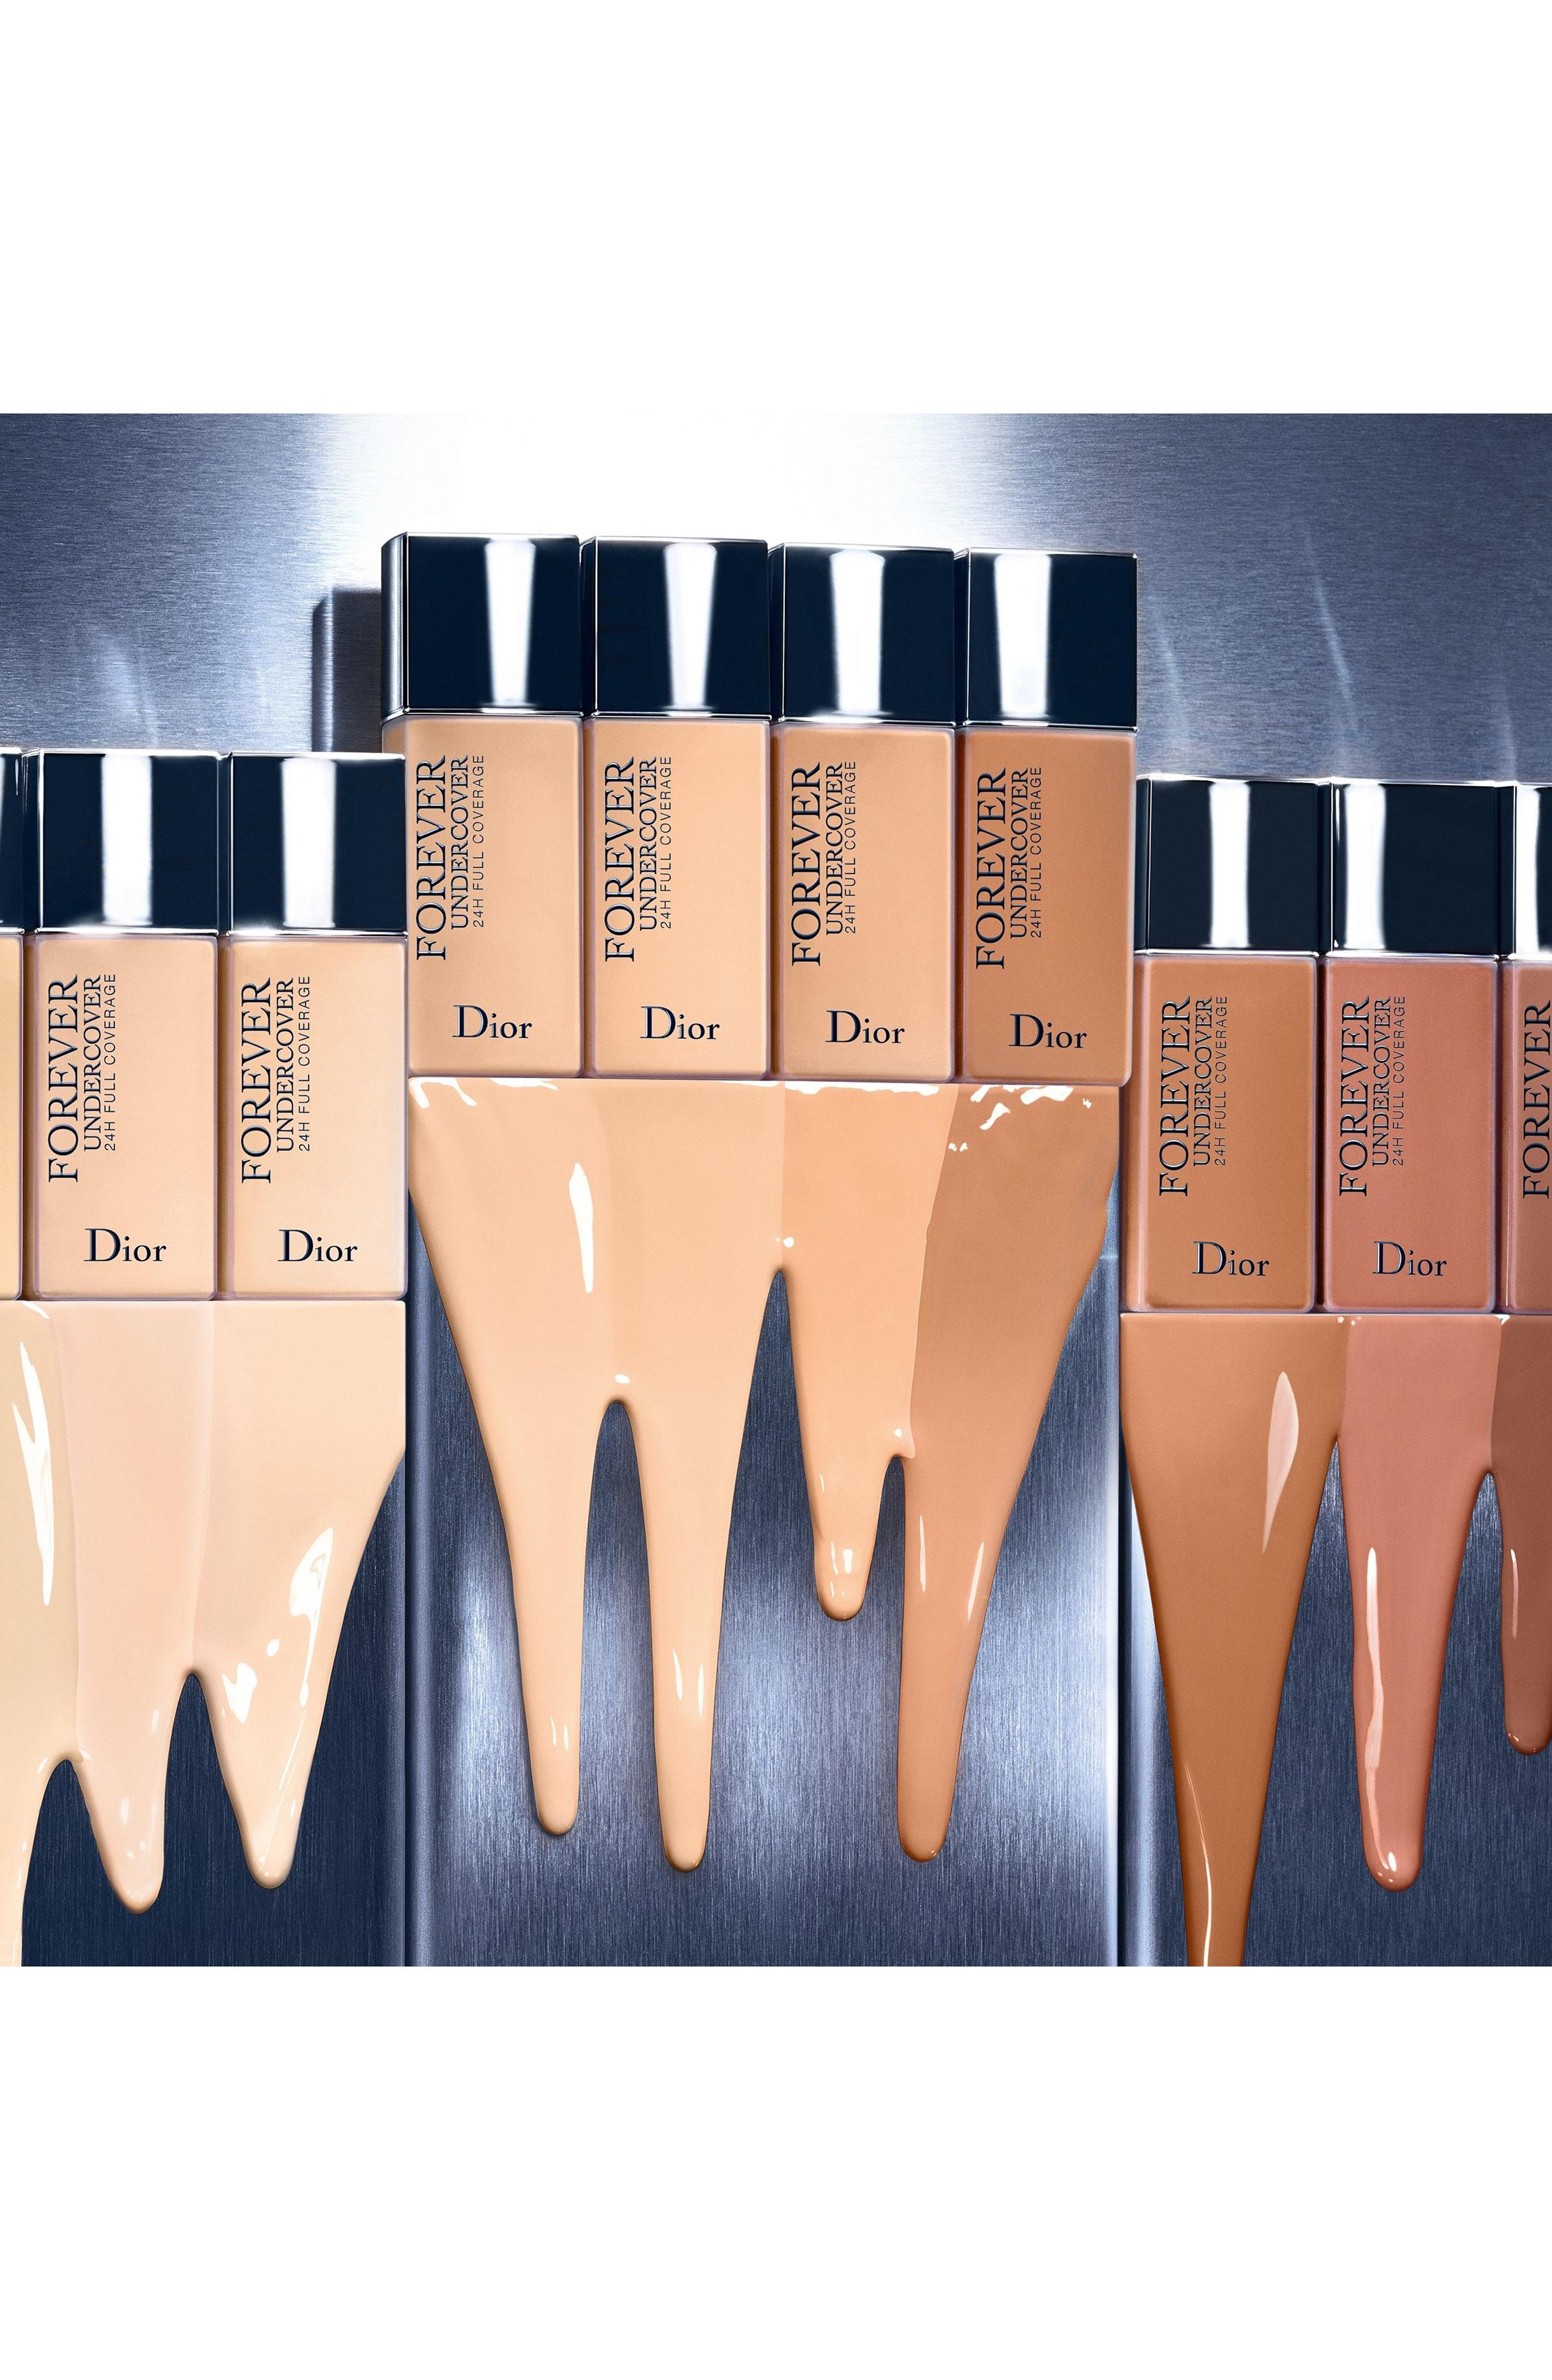 Dior Skin Forever Undercover 24-Hour Full Coverage Liquid Foundation - 010 Ivory